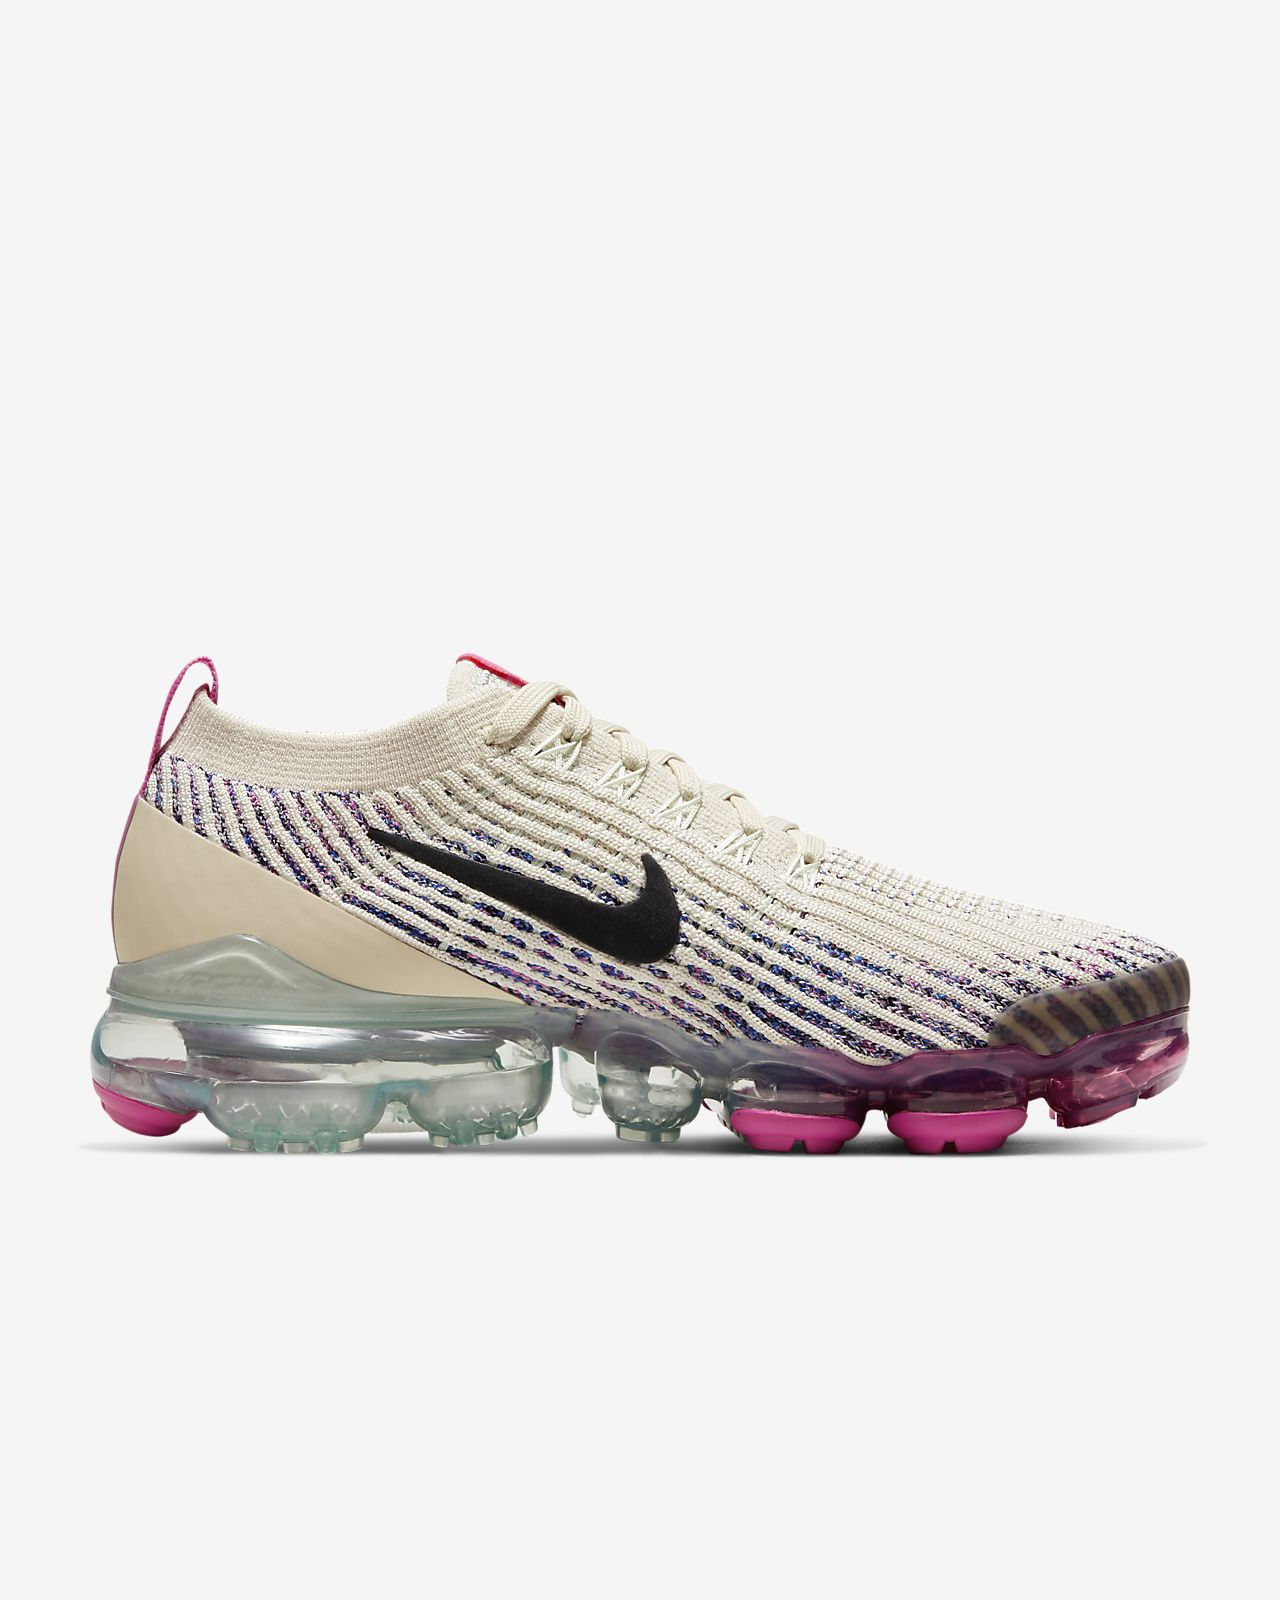 Womens Nike Air Max Dia Shoes Sale Online at Cheap UK Prices